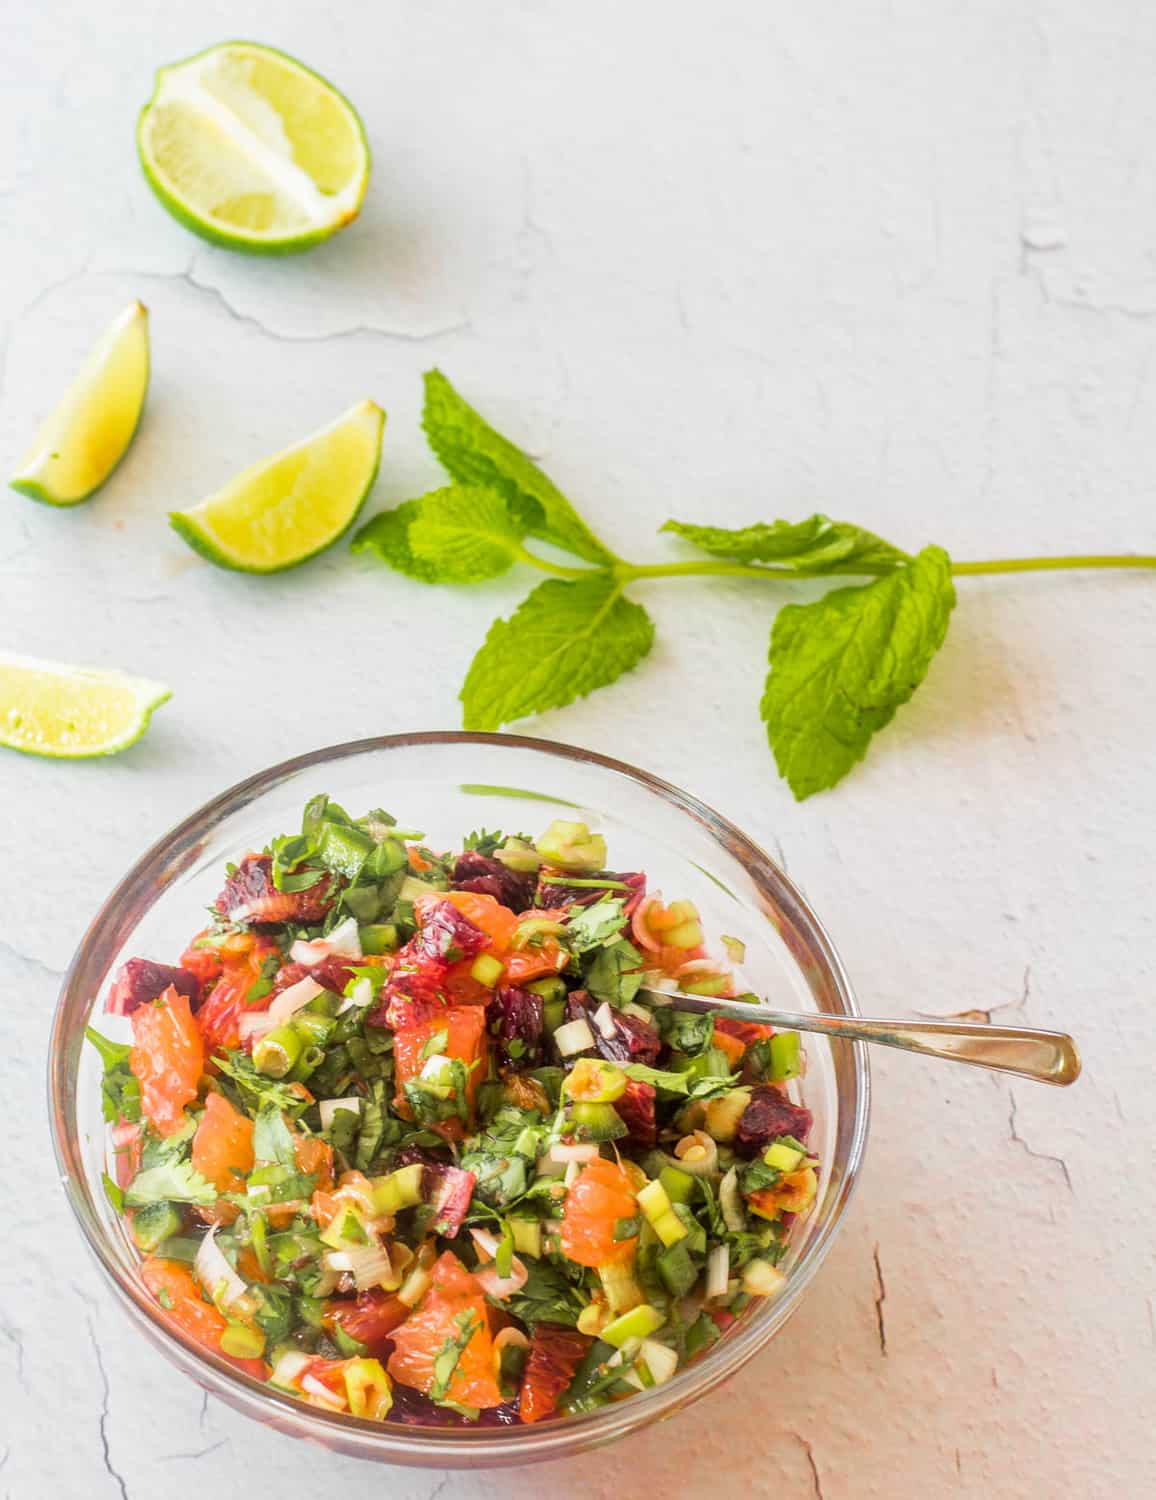 A glass bowl of Mexican citrus salsa with jalapeño, scallions, mint or cilantro alongside lime wedges and mint.